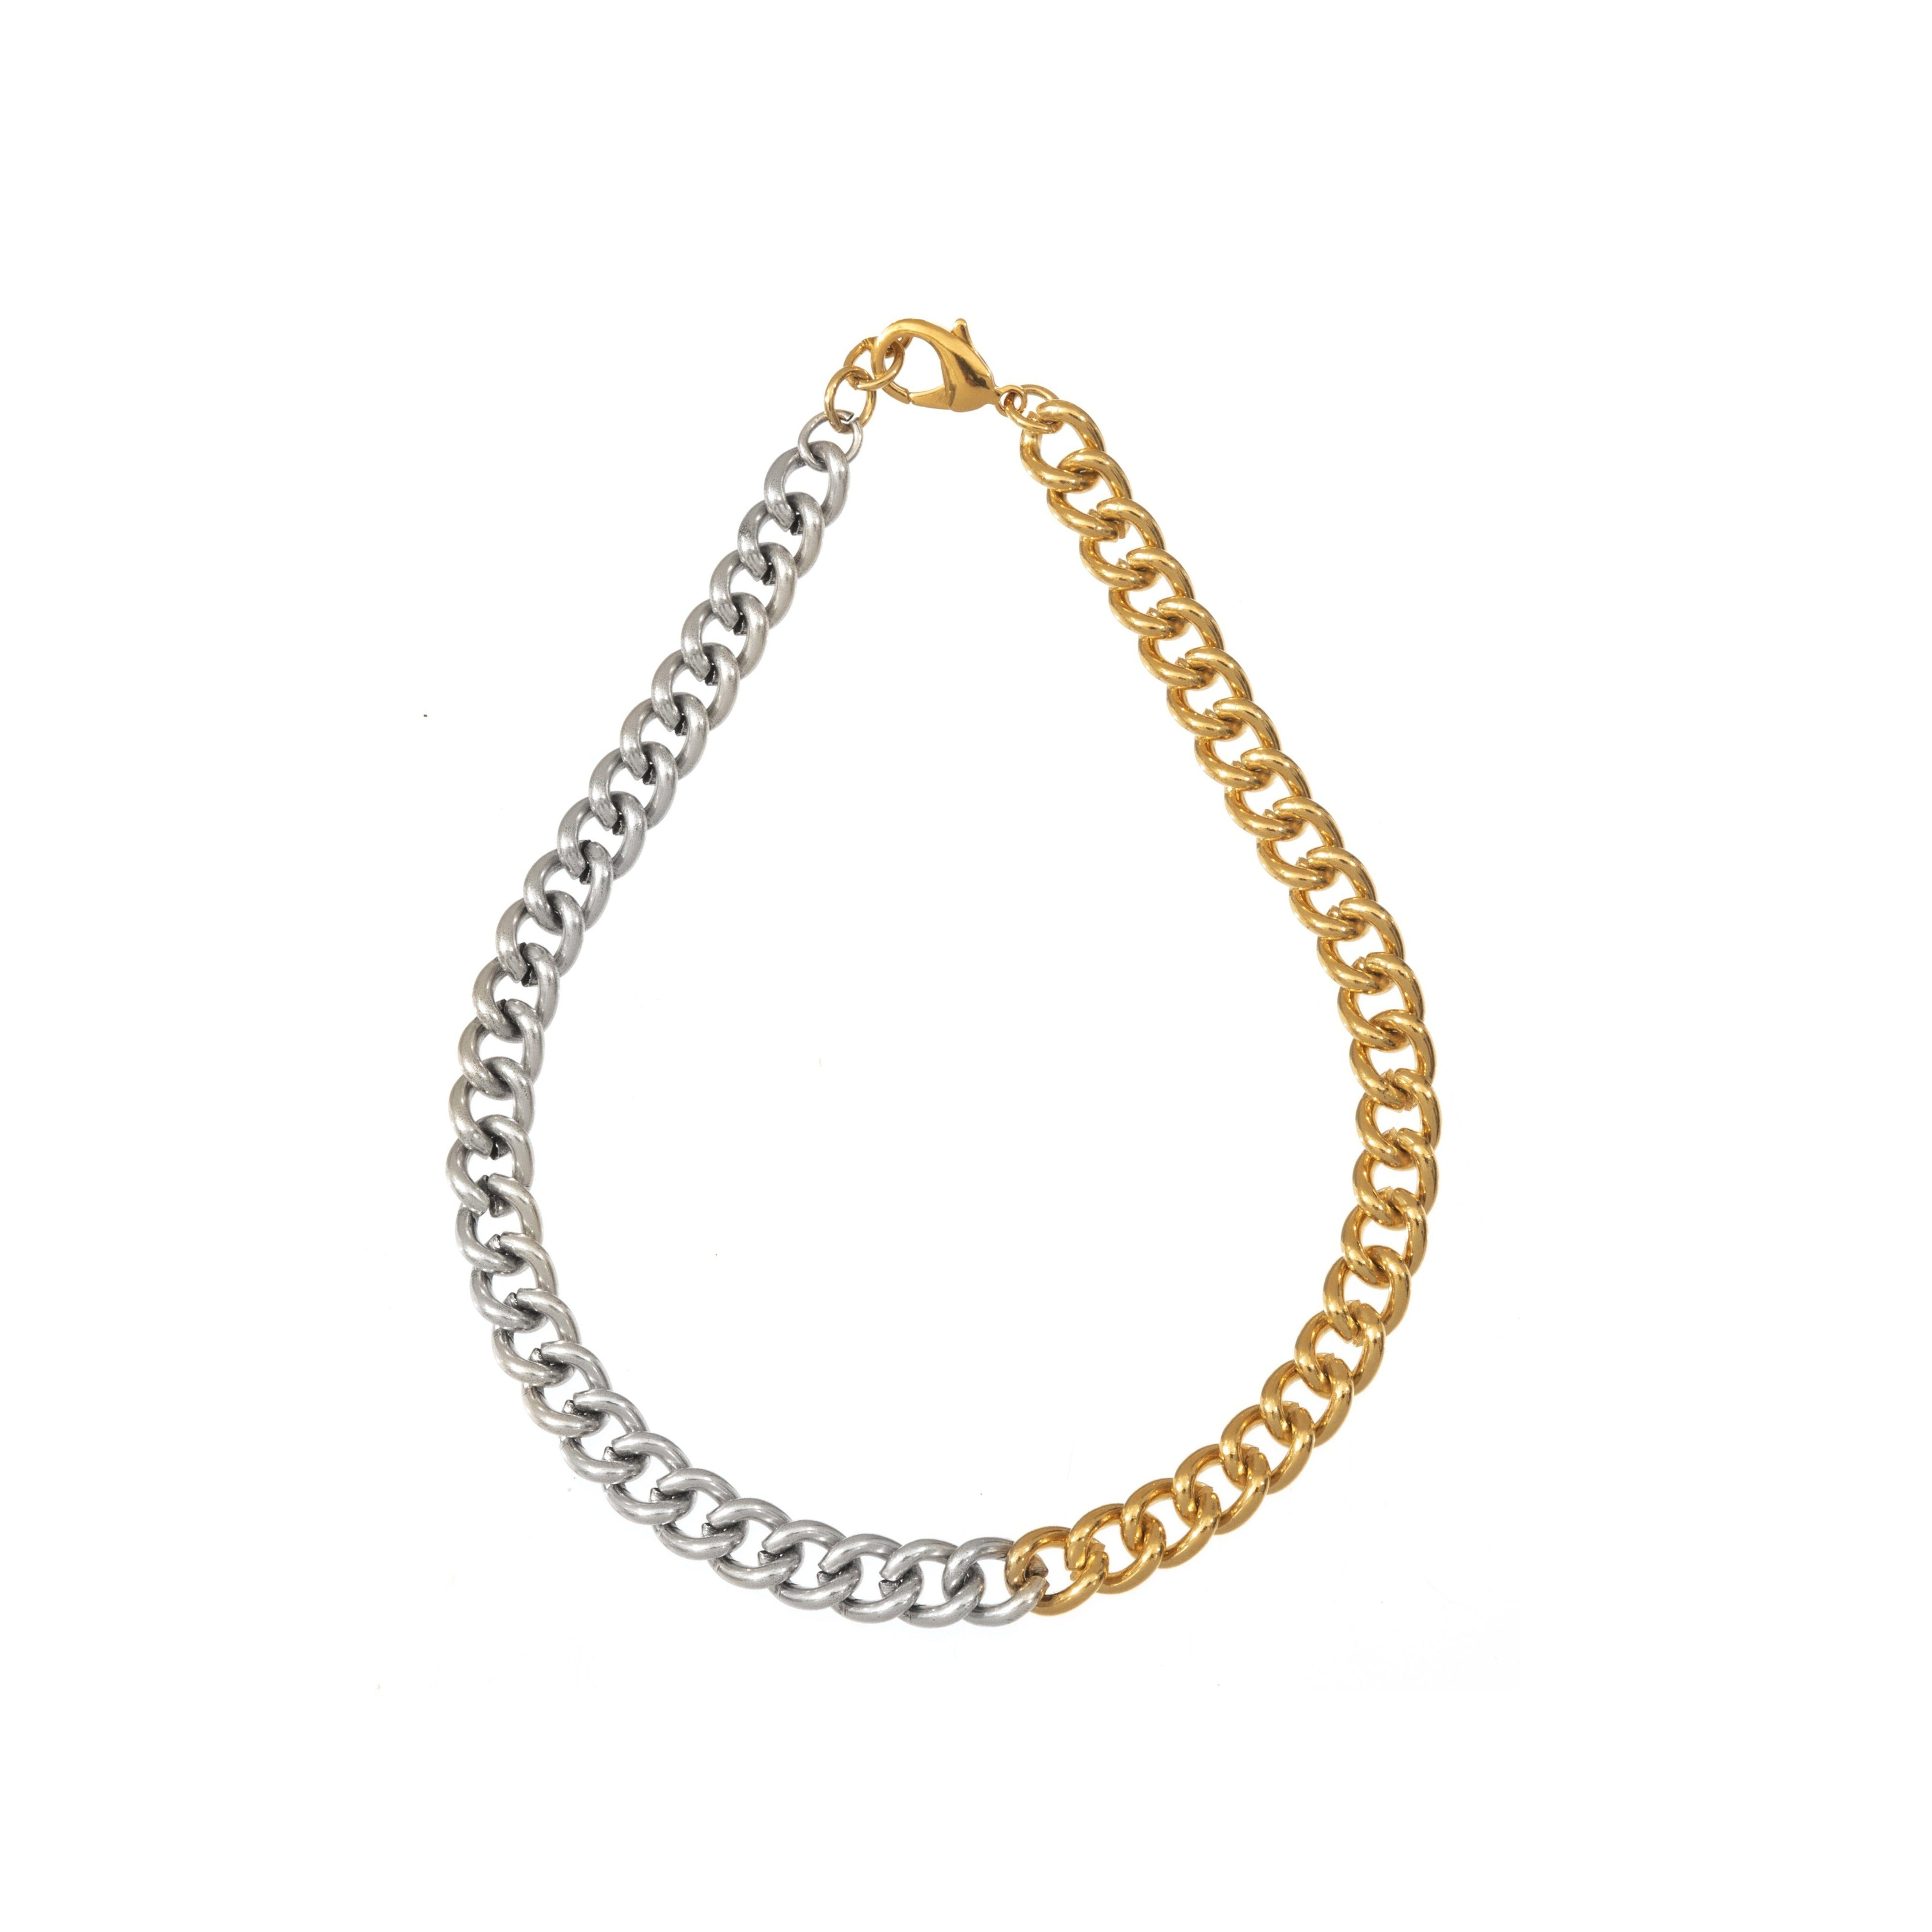 Chunky Chain Necklace- Gold & Silver